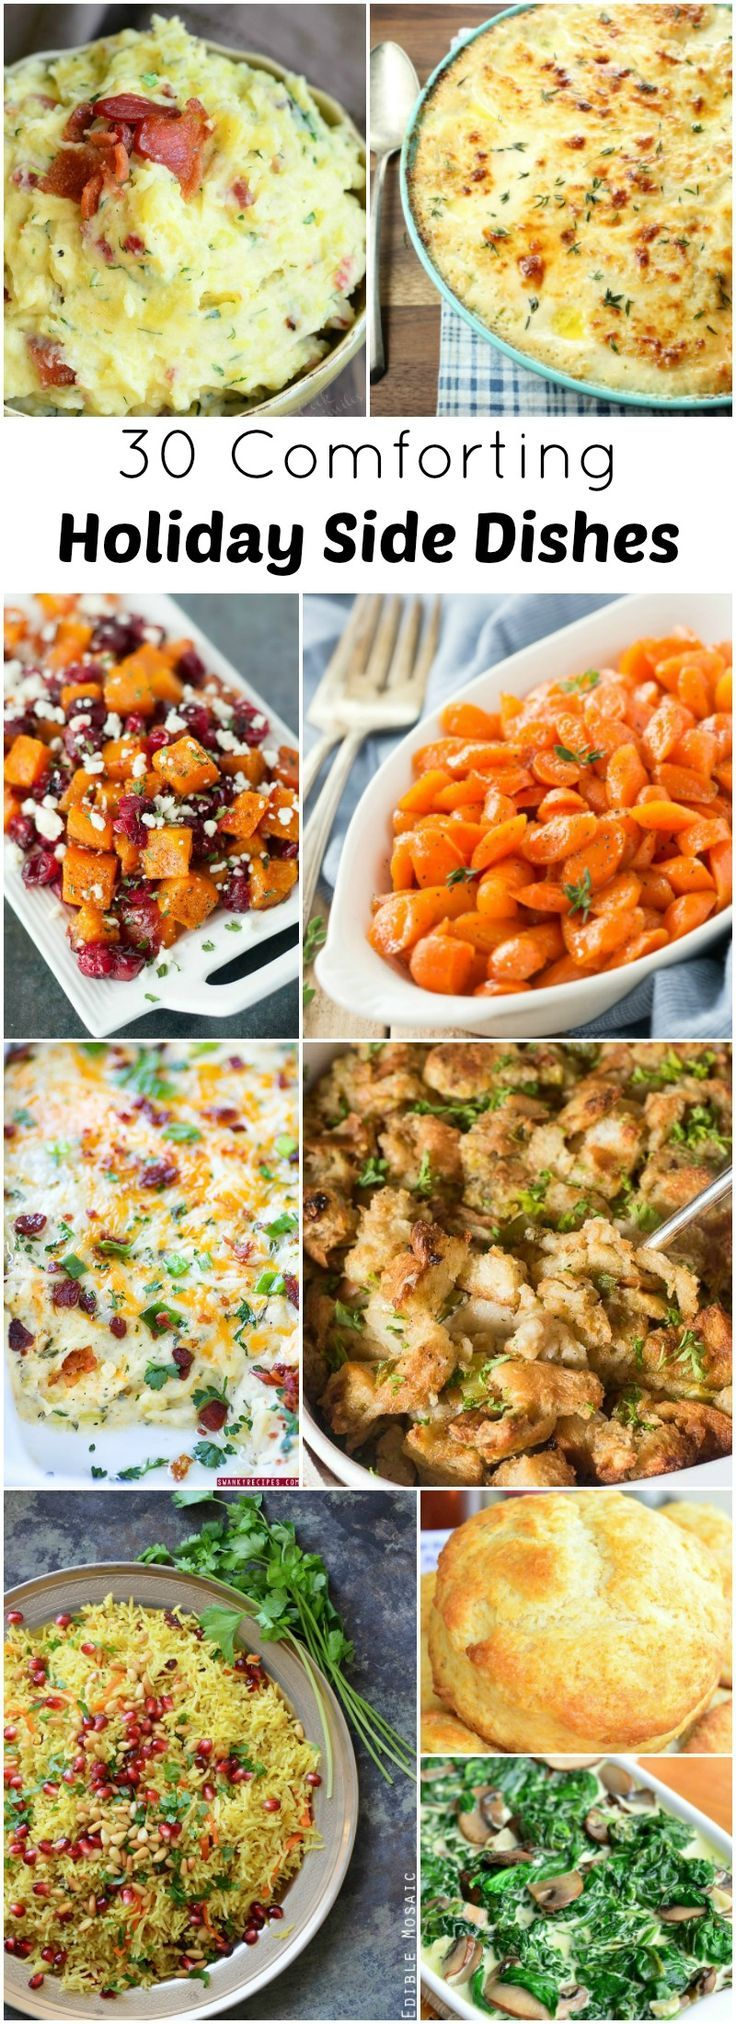 30 Comforting Holiday Side Dishes